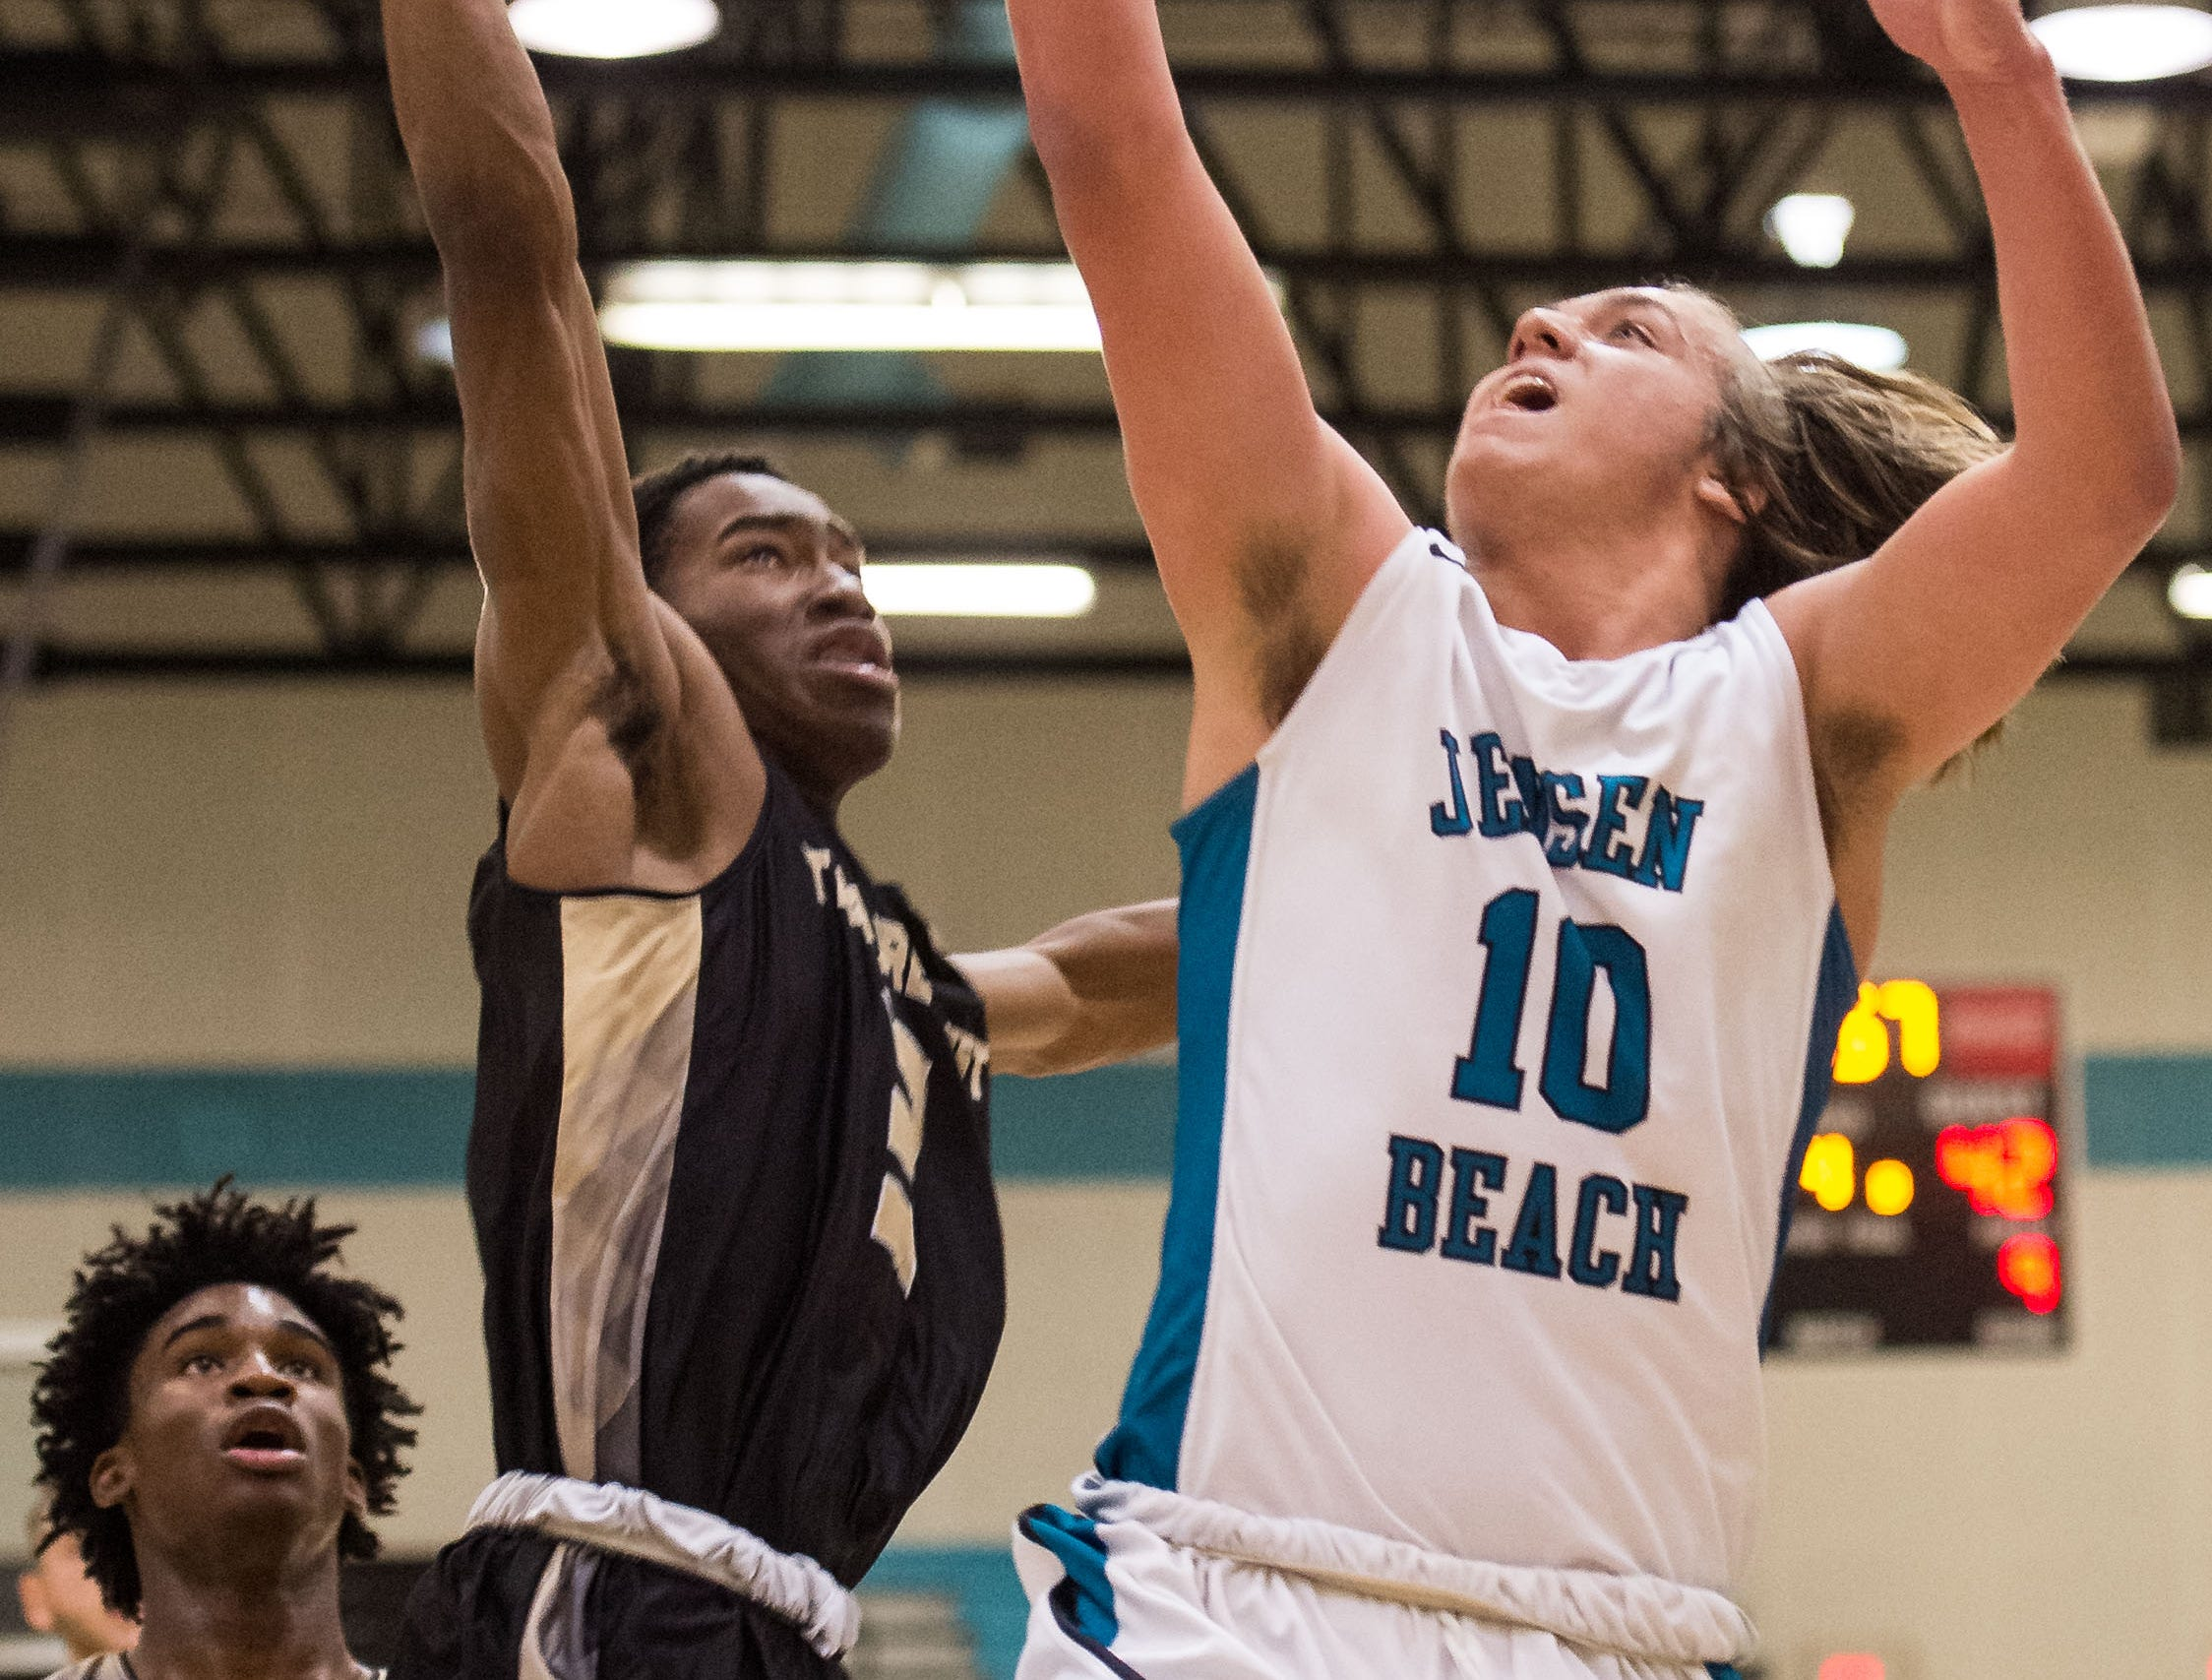 Jensen Beach plays against Treasure Coast during the high school boys basketball game Tuesday, Dec. 4, 2018, at Jensen Beach High School.